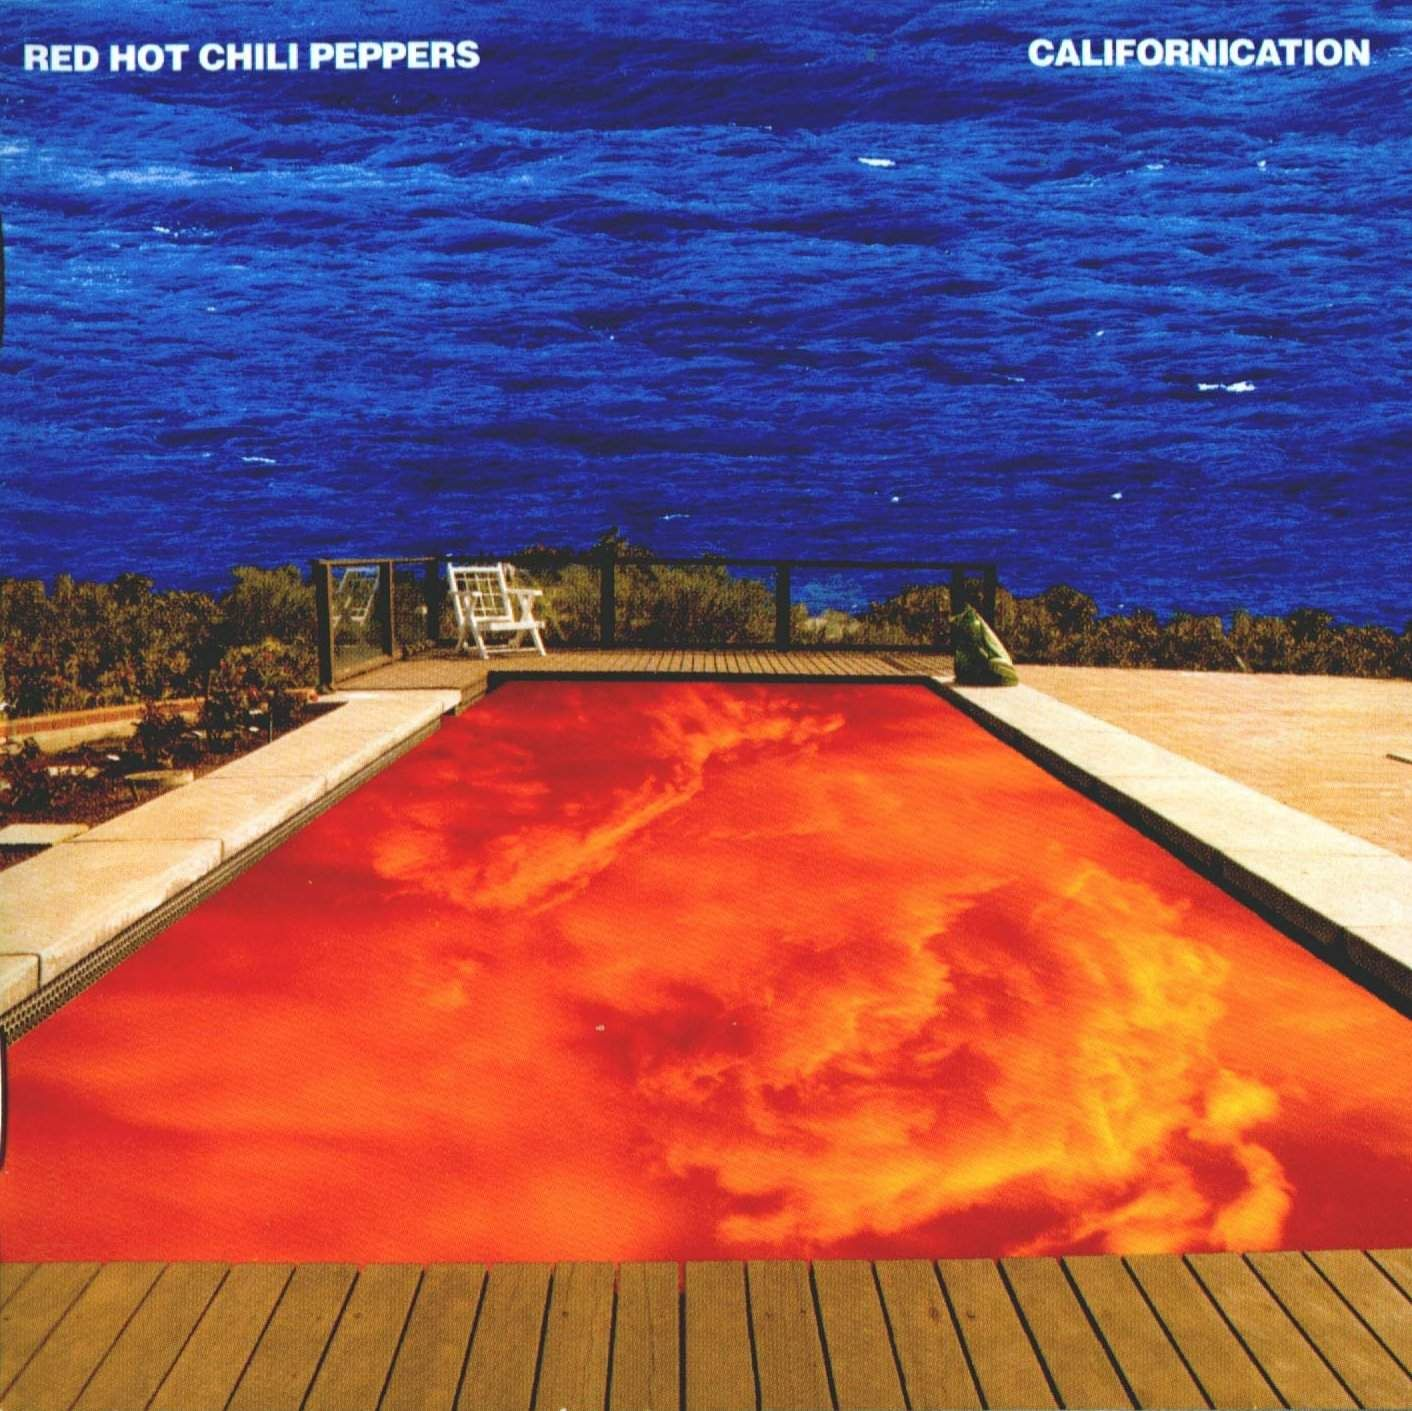 Californication by Red Hot Chili Peppers. | Album Covers | Pinterest ...